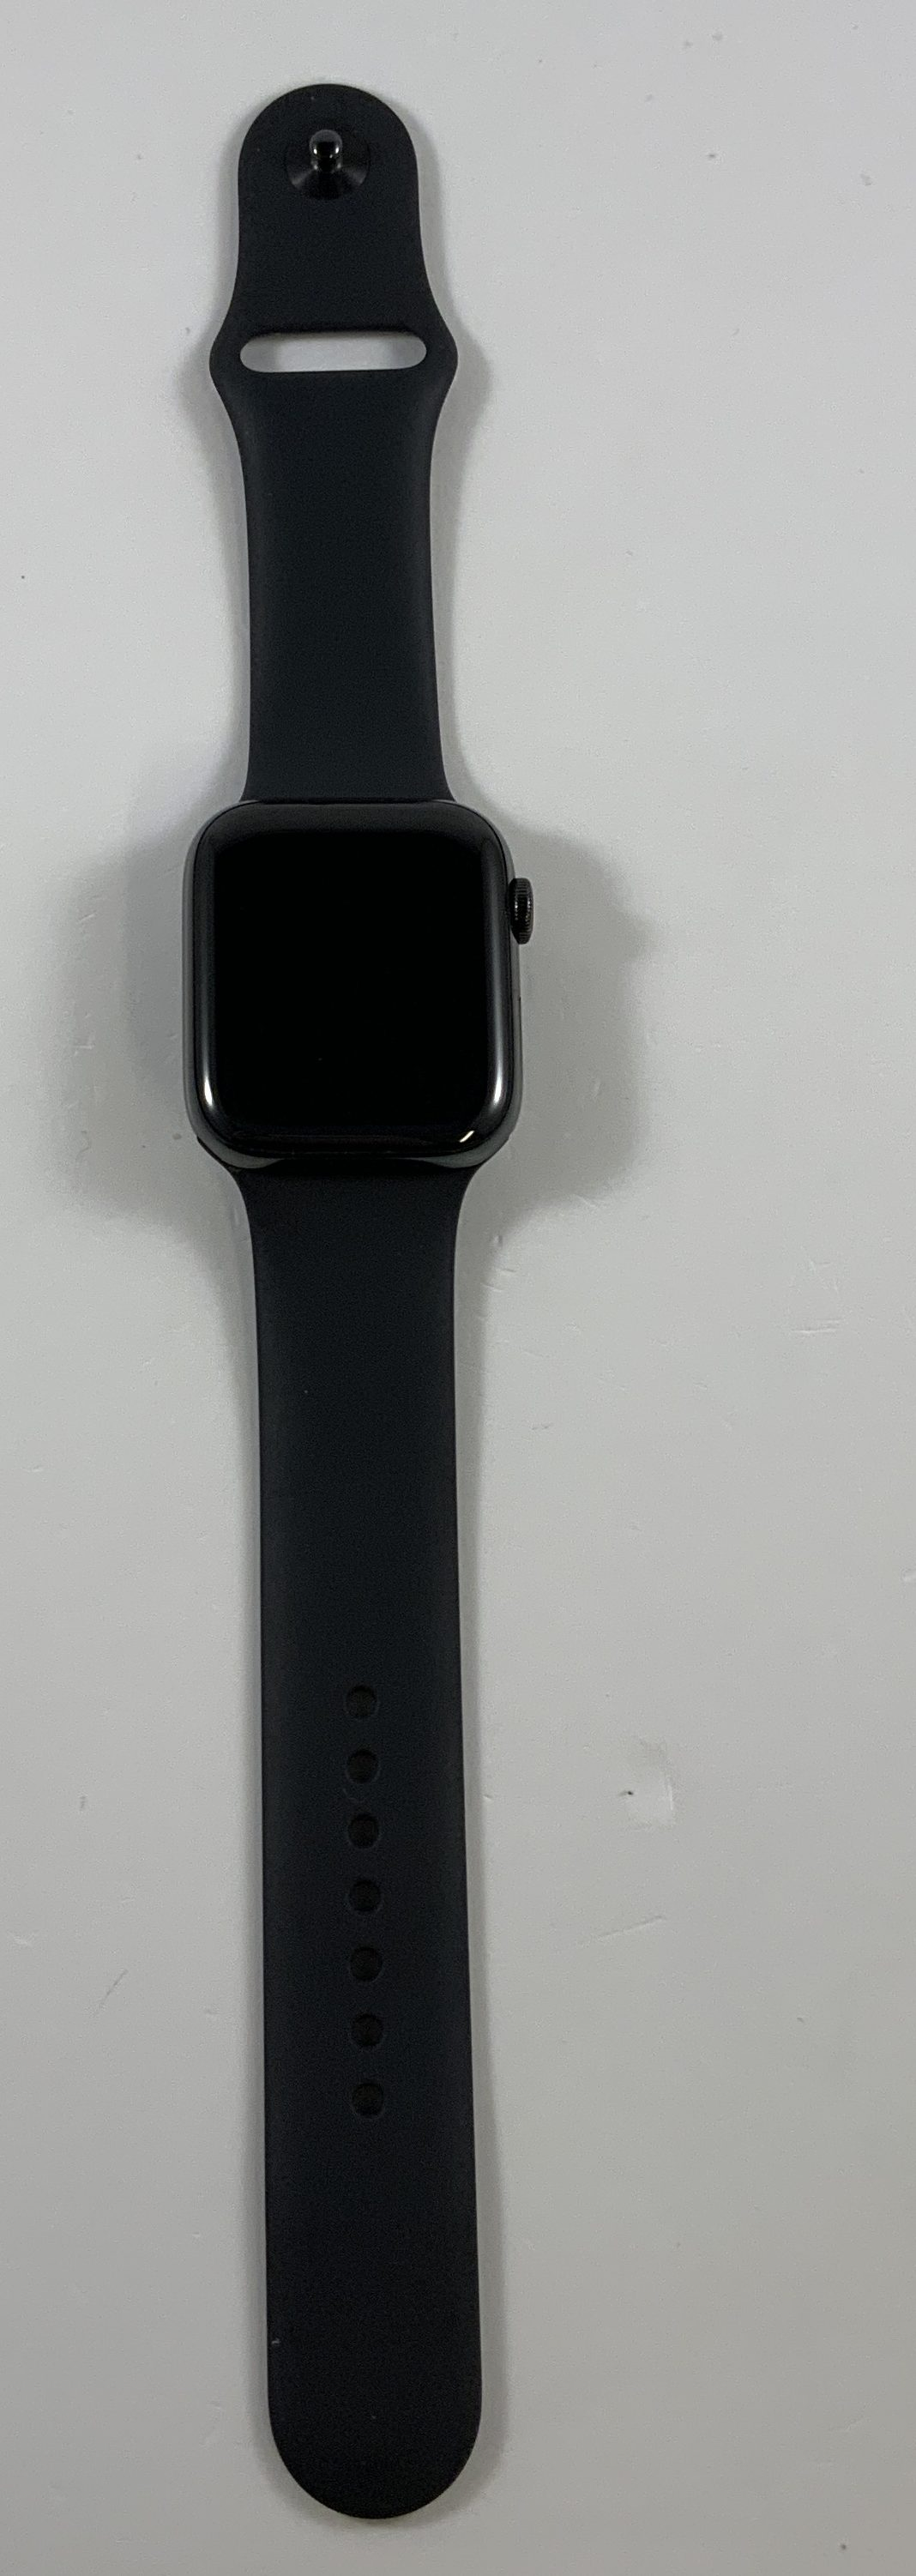 Watch Series 4 Steel Cellular (44mm), Space Gray, Black Sport Band, Afbeelding 1